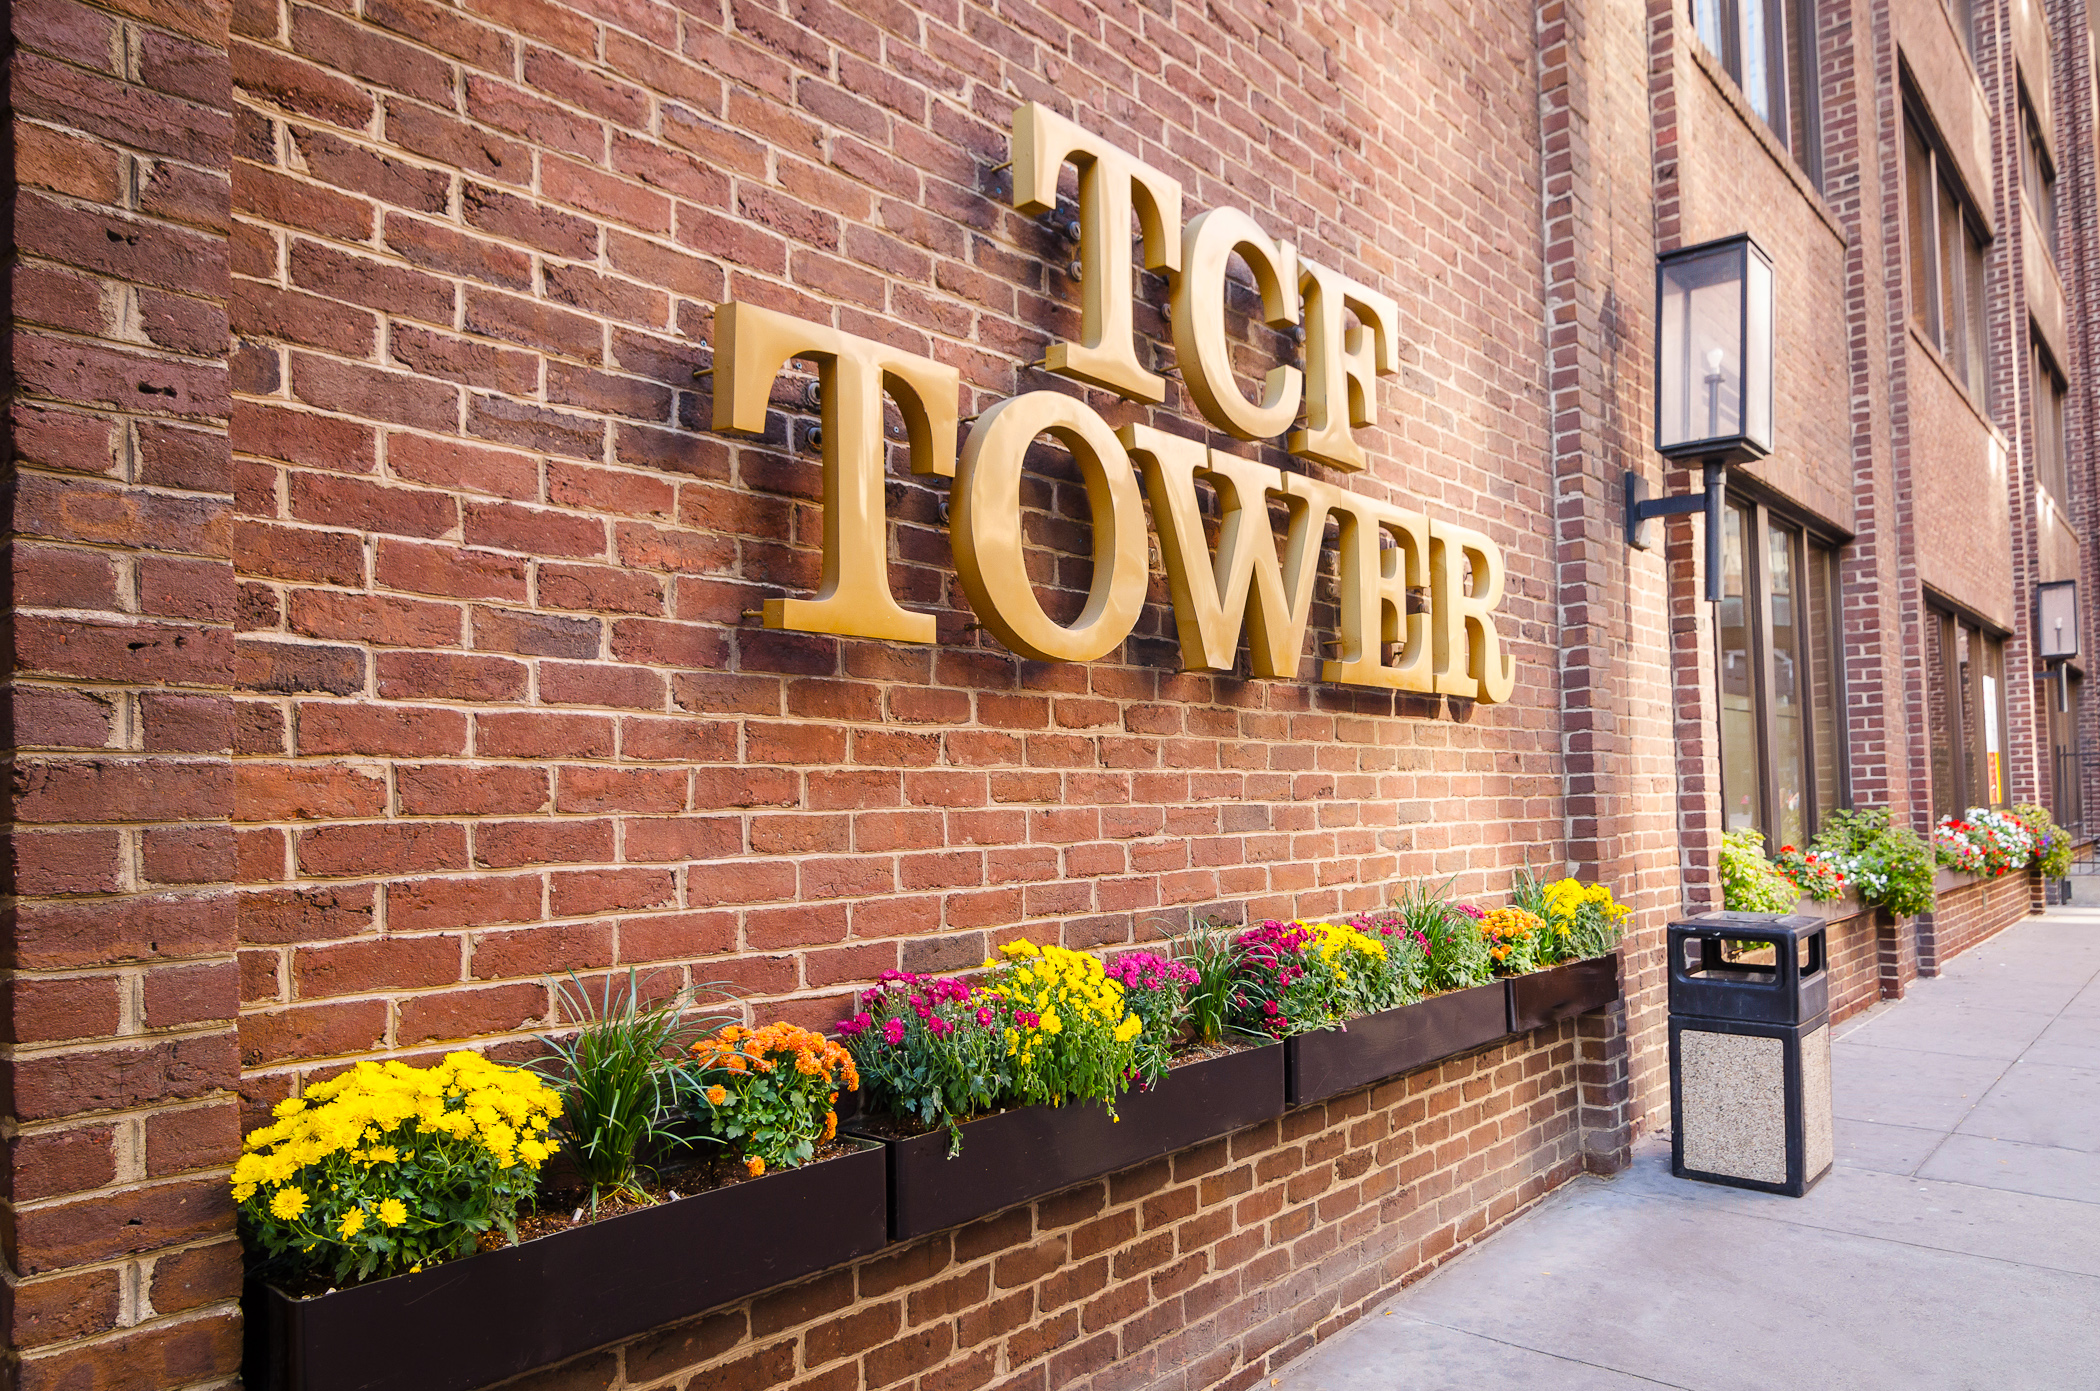 TCF Tower